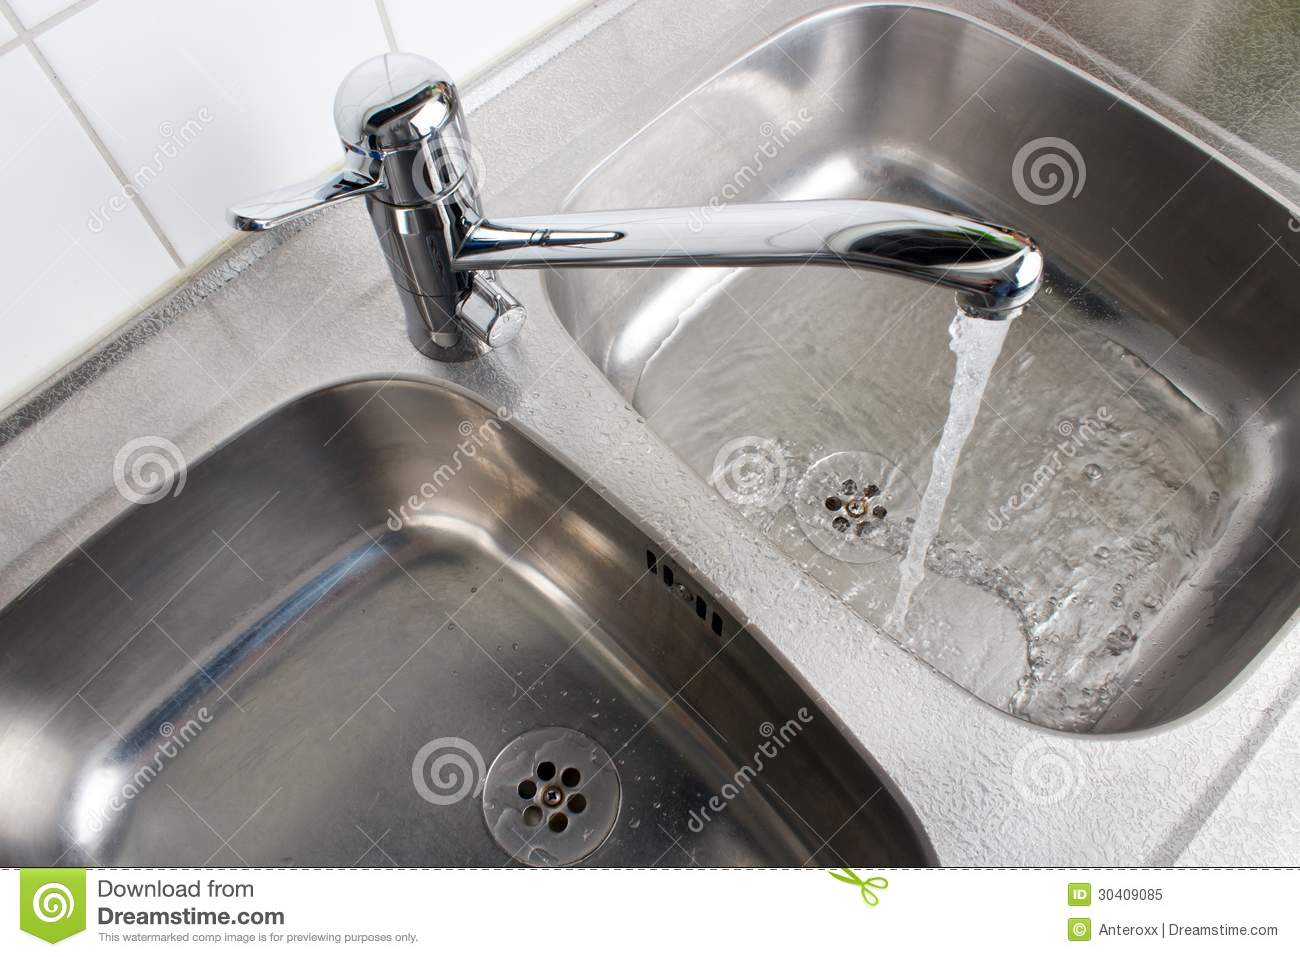 Faucet with washbasin stock image. Image of faucet, drain - 30409085